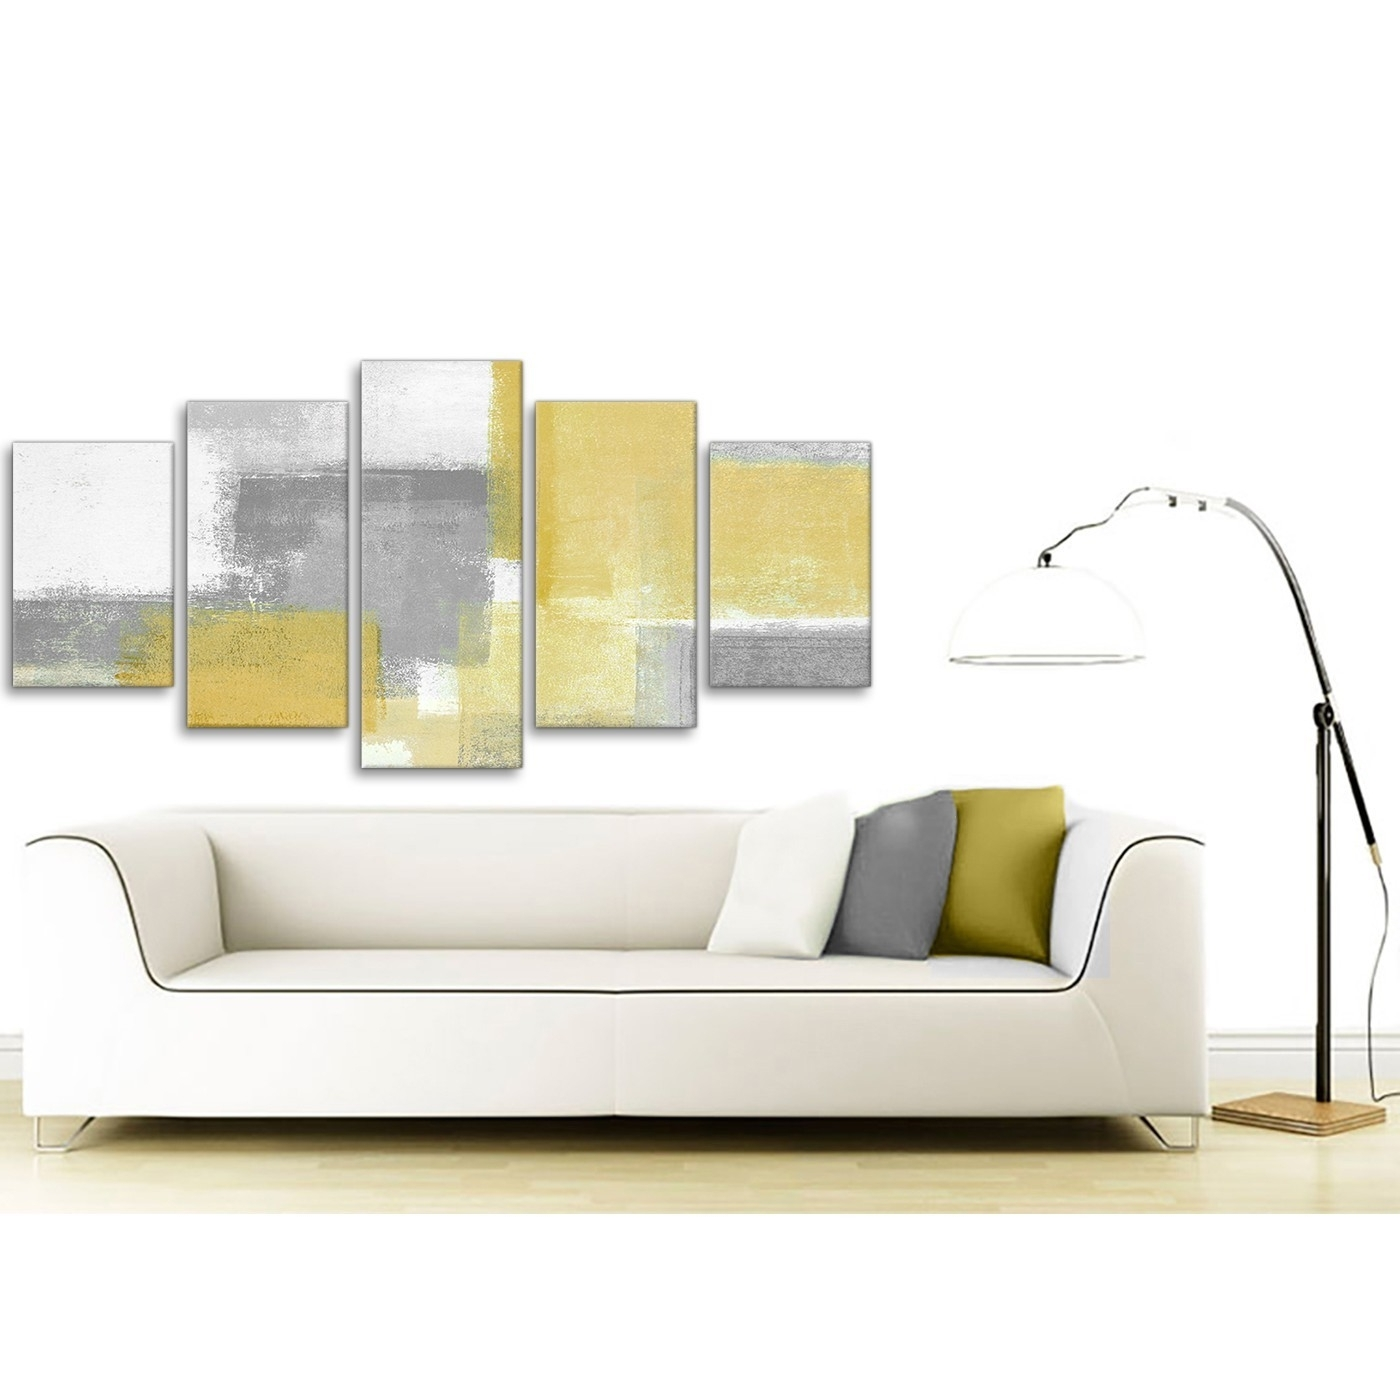 Most Recent Abstract Living Room Wall Art Throughout Abstract Living Room Art (View 12 of 15)